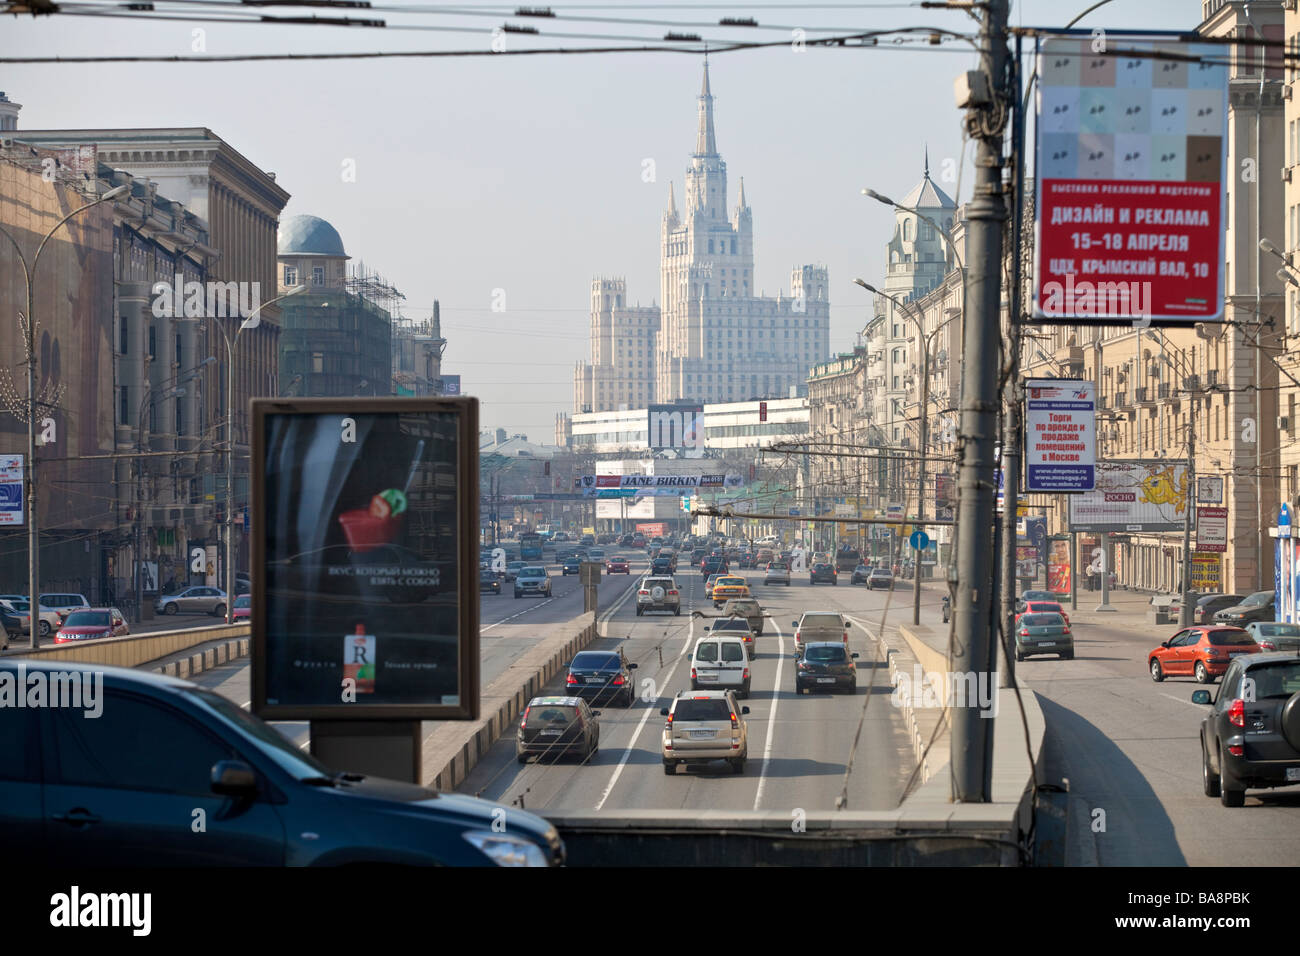 Moscow traffic with one of the seven sisters Stalin era Kurdinskaya square buildings in the background, Moscow, Russia. Stock Photo